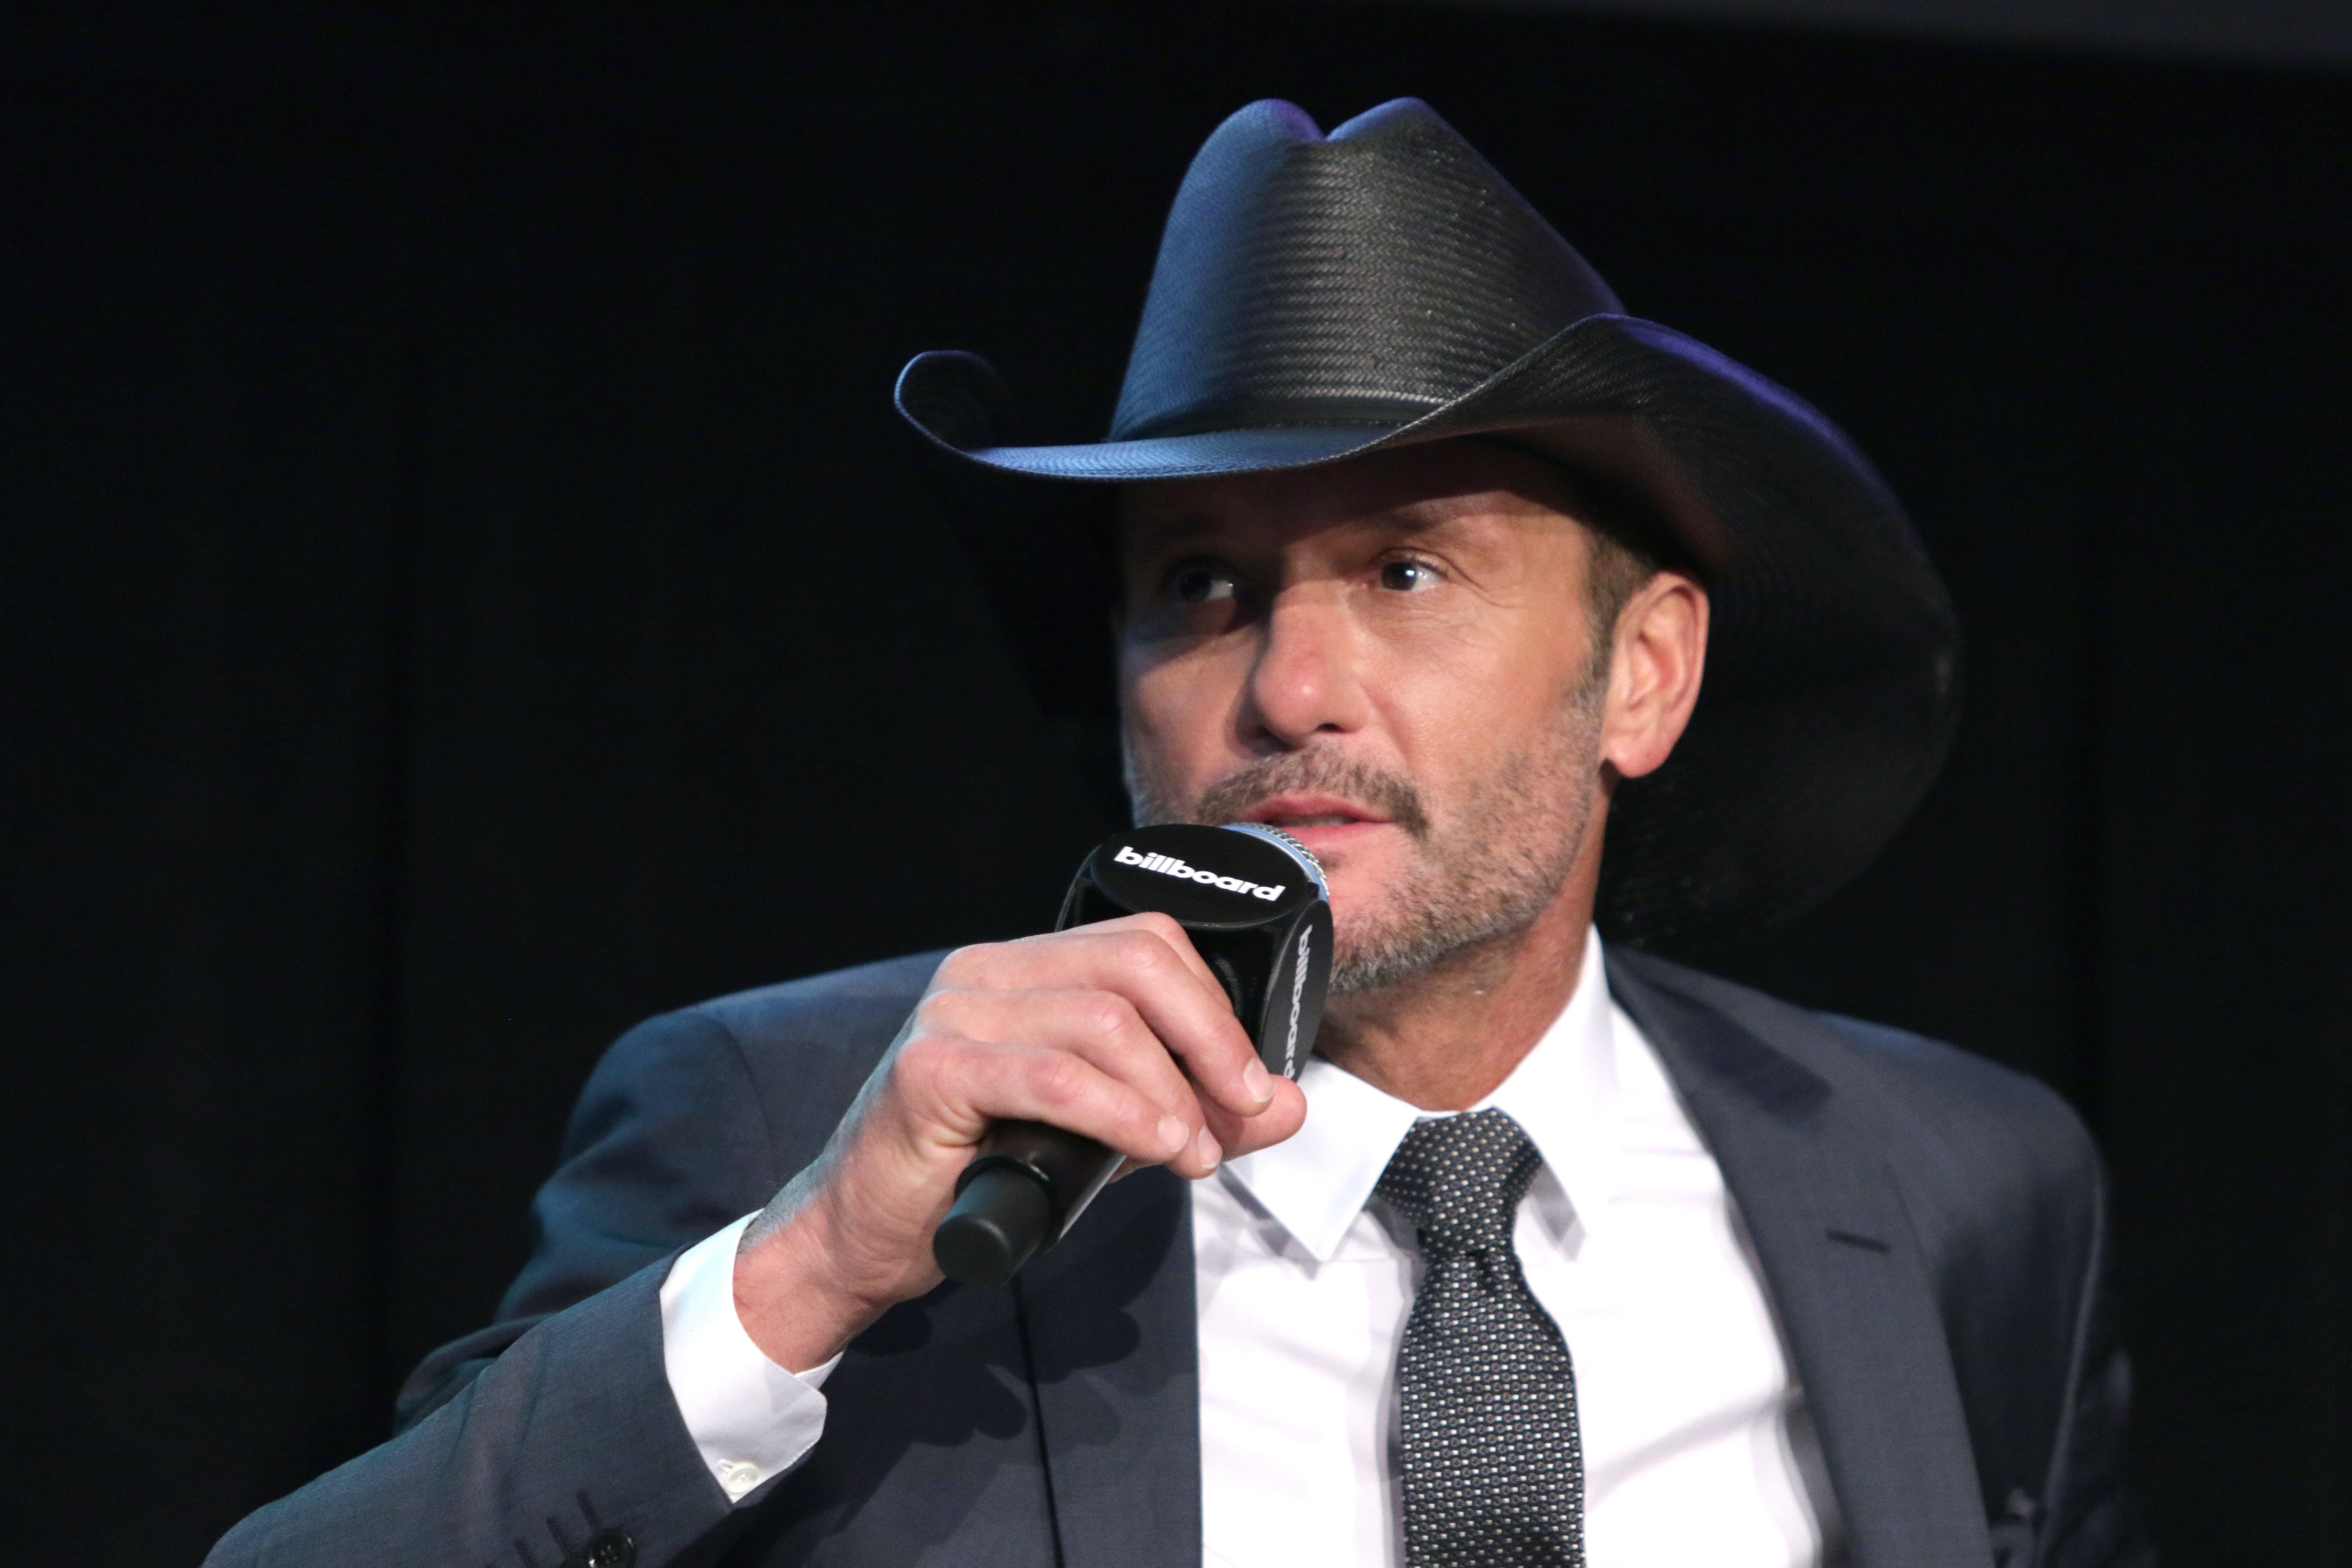 Tim McGraw during the Billboard 2017 Touring Conference - Legends Of Live: Tim McGraw And Faith Hills on November 14, 2017. | Photo: GettyImages